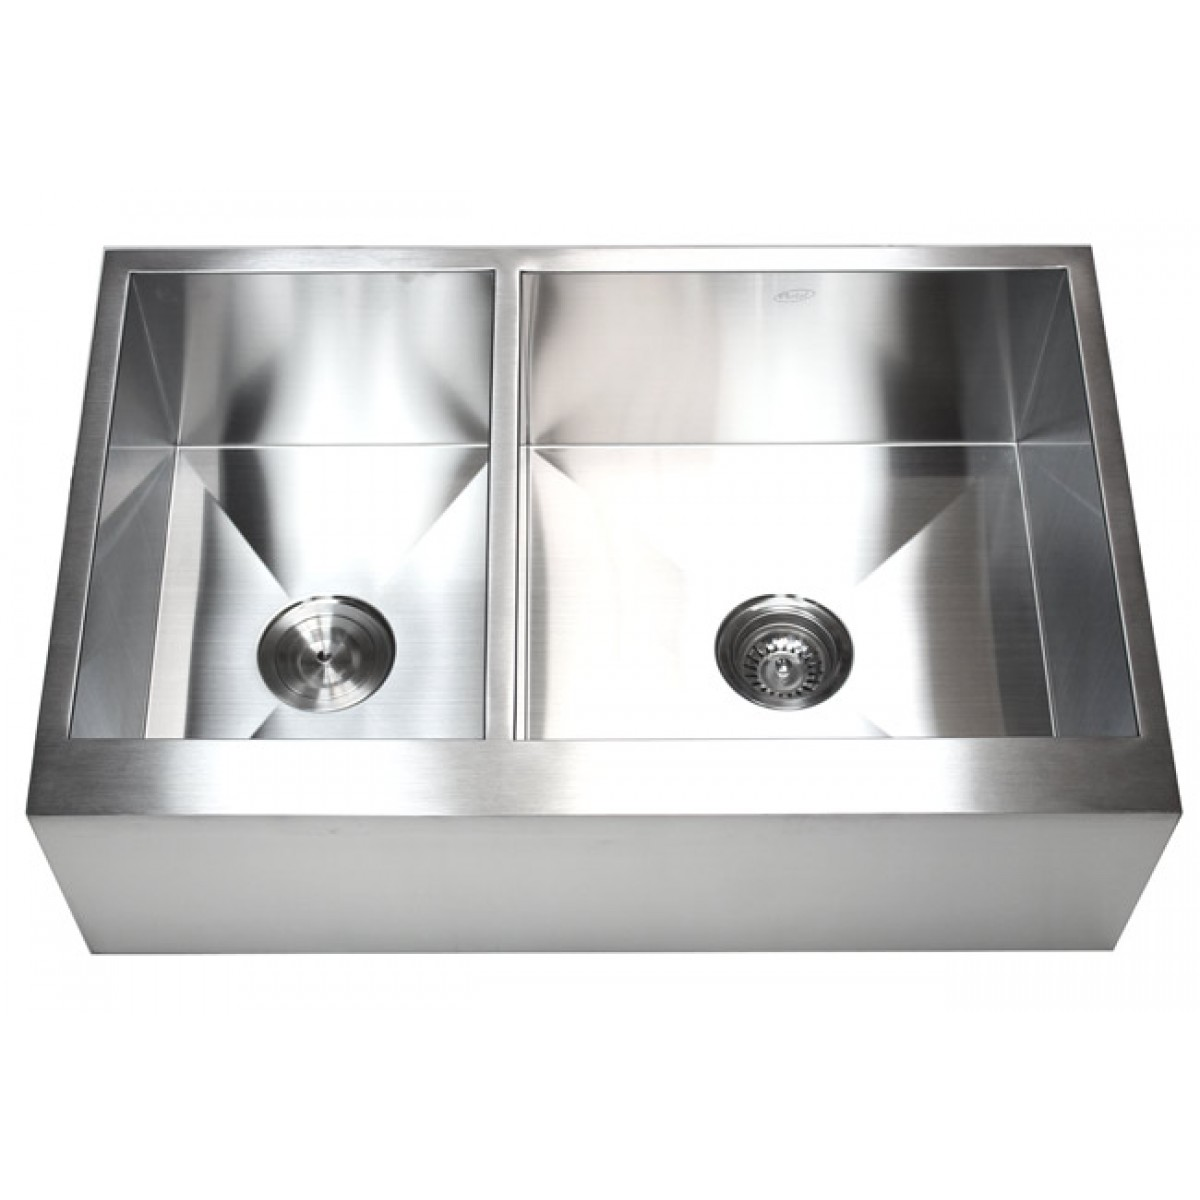 33 Inch Apron Front Sink : 33 Inch Stainless Steel 40/60 Double Bowl Flat Front Farm Apron ...